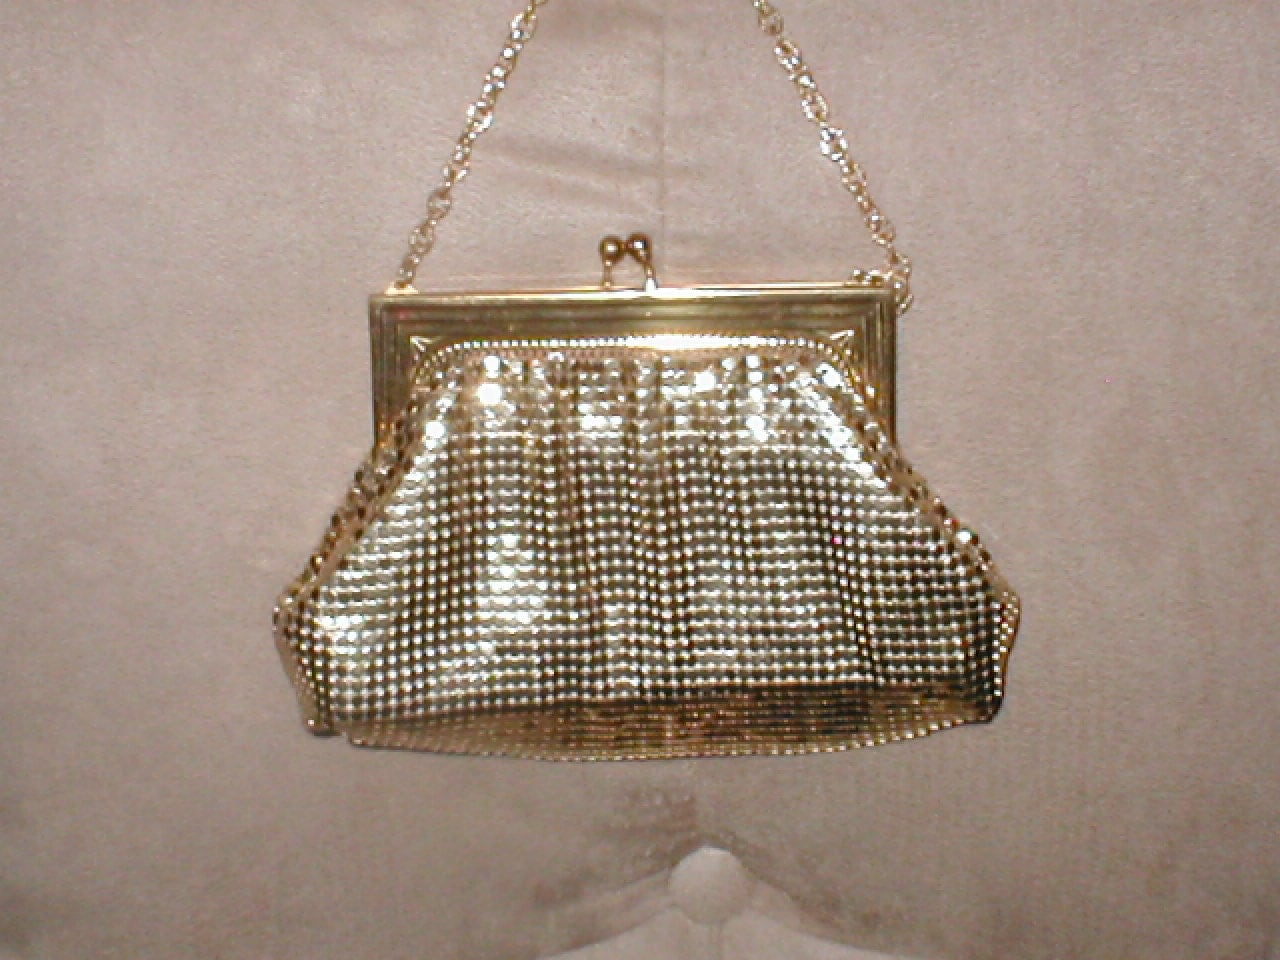 dating whiting and davis mesh bags Handbags, purses vintage hats  vintage 30s 40s whiting and davis beadlite mesh handbag purse w  this early 40's whiting & davis bag is made of the firm's.